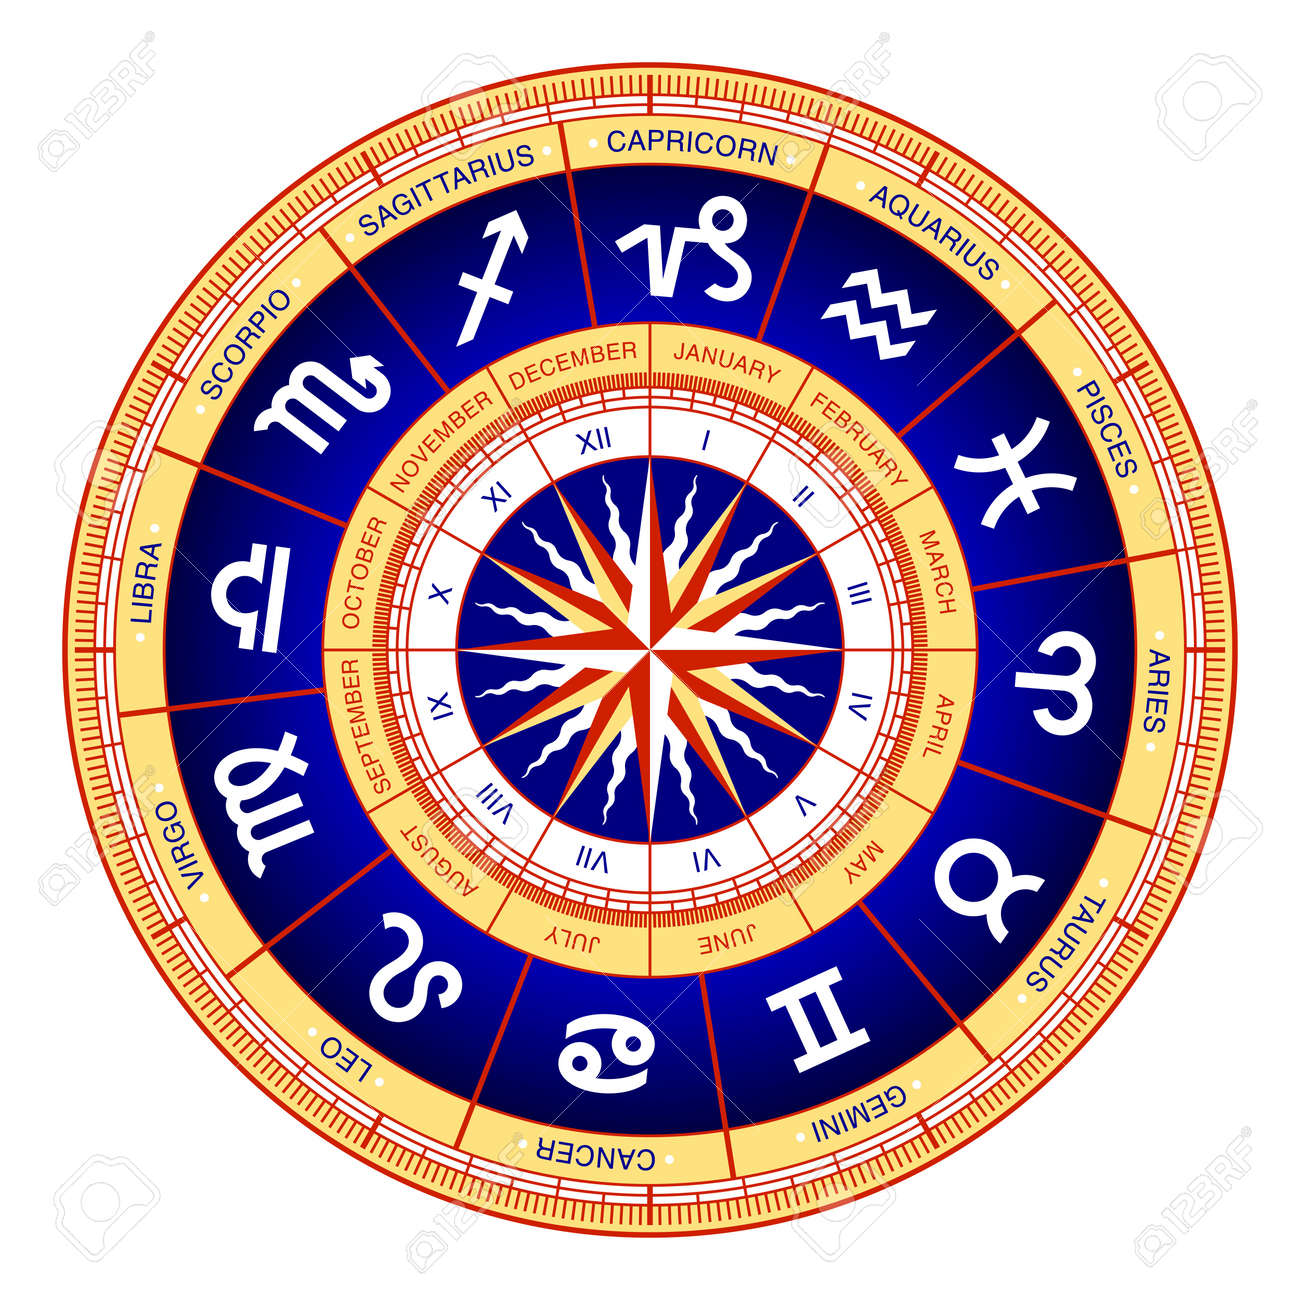 Image result for astrology wheel